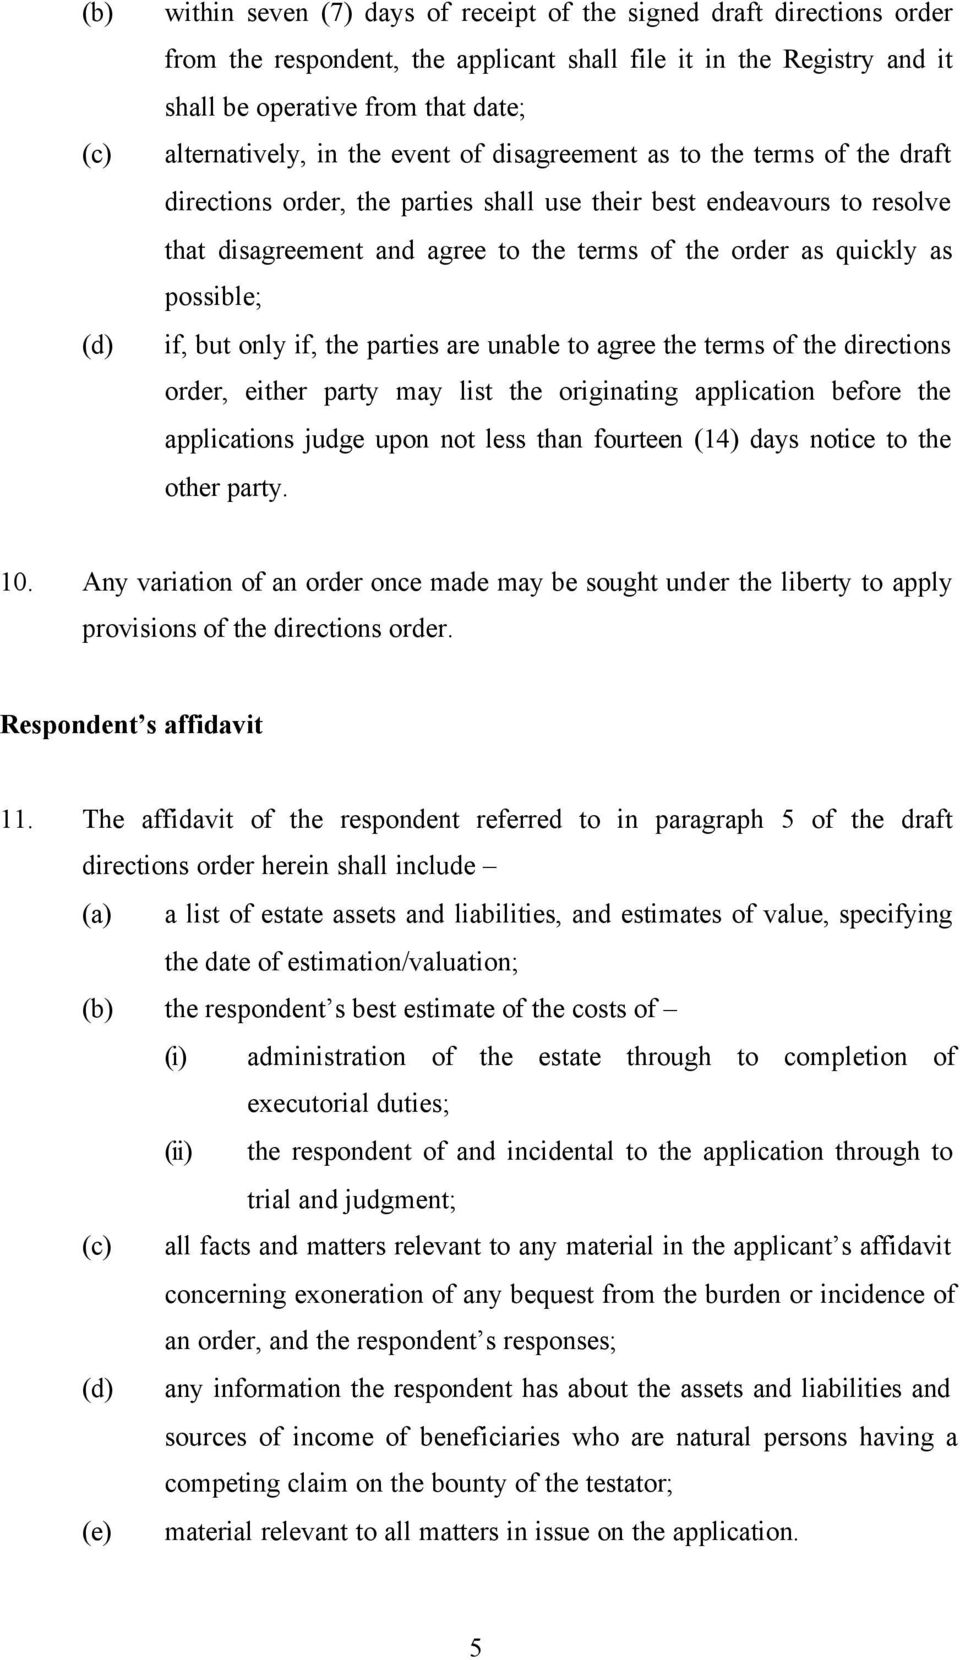 as quickly as possible; if, but only if, the parties are unable to agree the terms of the directions order, either party may list the originating application before the applications judge upon not